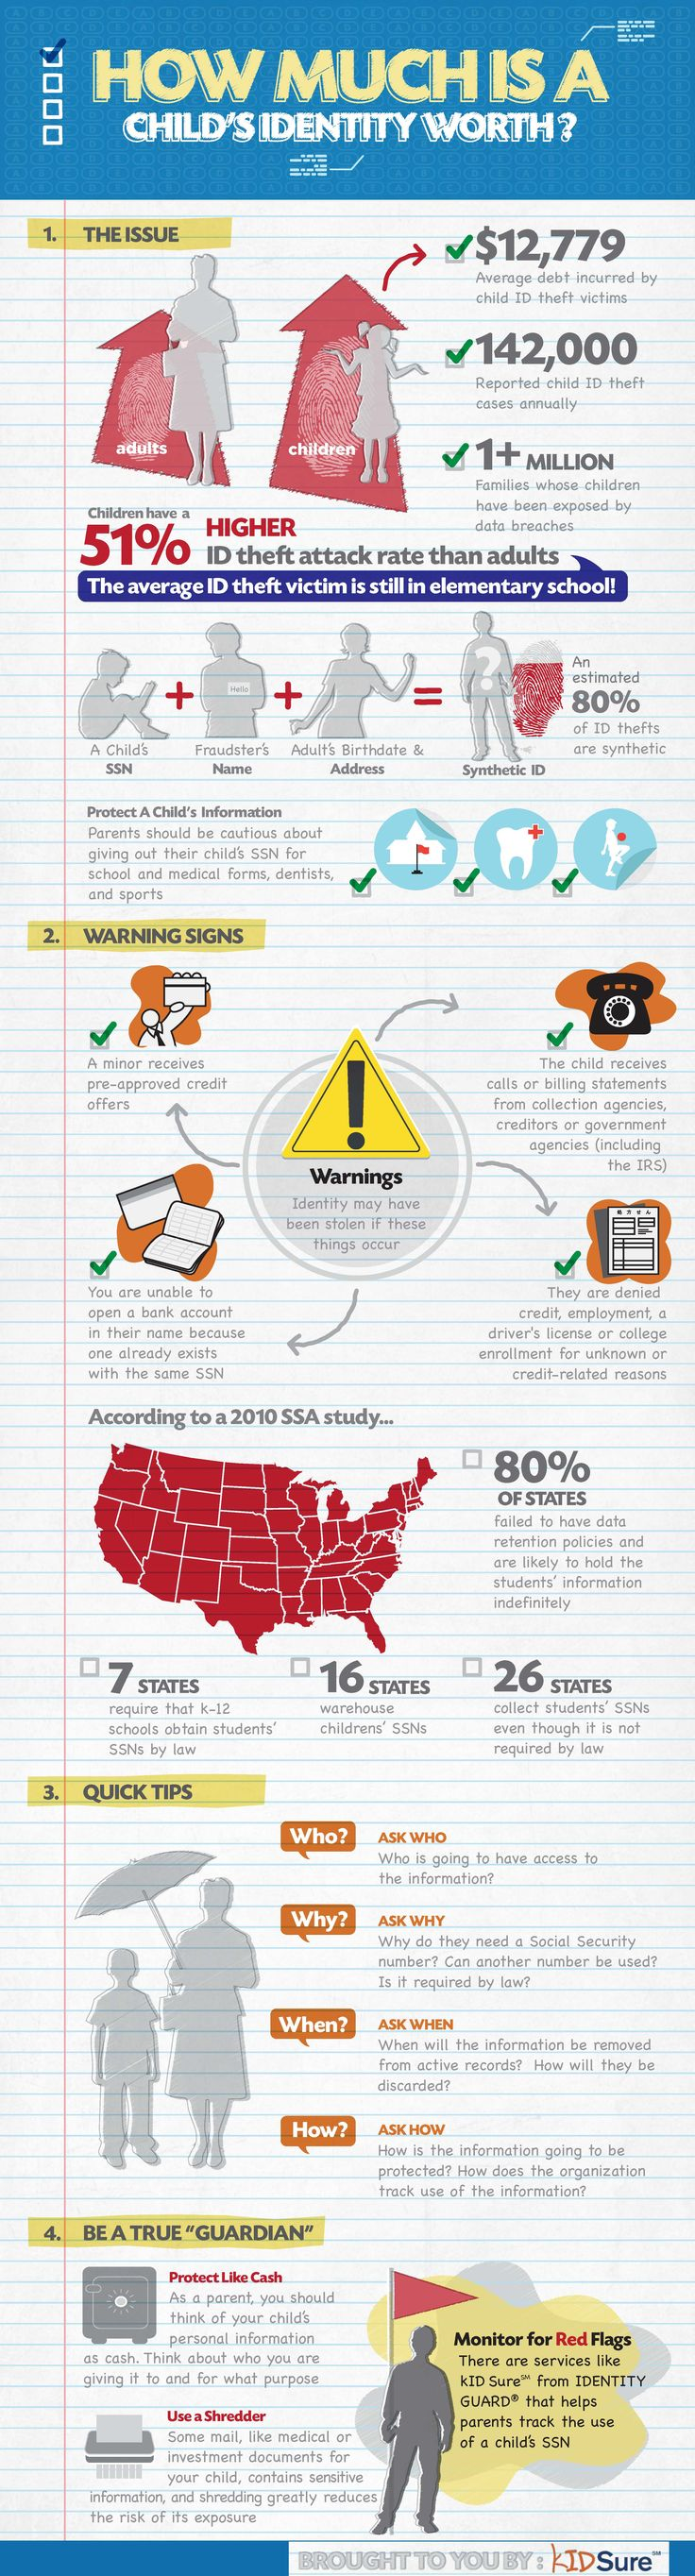 Internet Safety Tips for Children and Teens | The New York ...